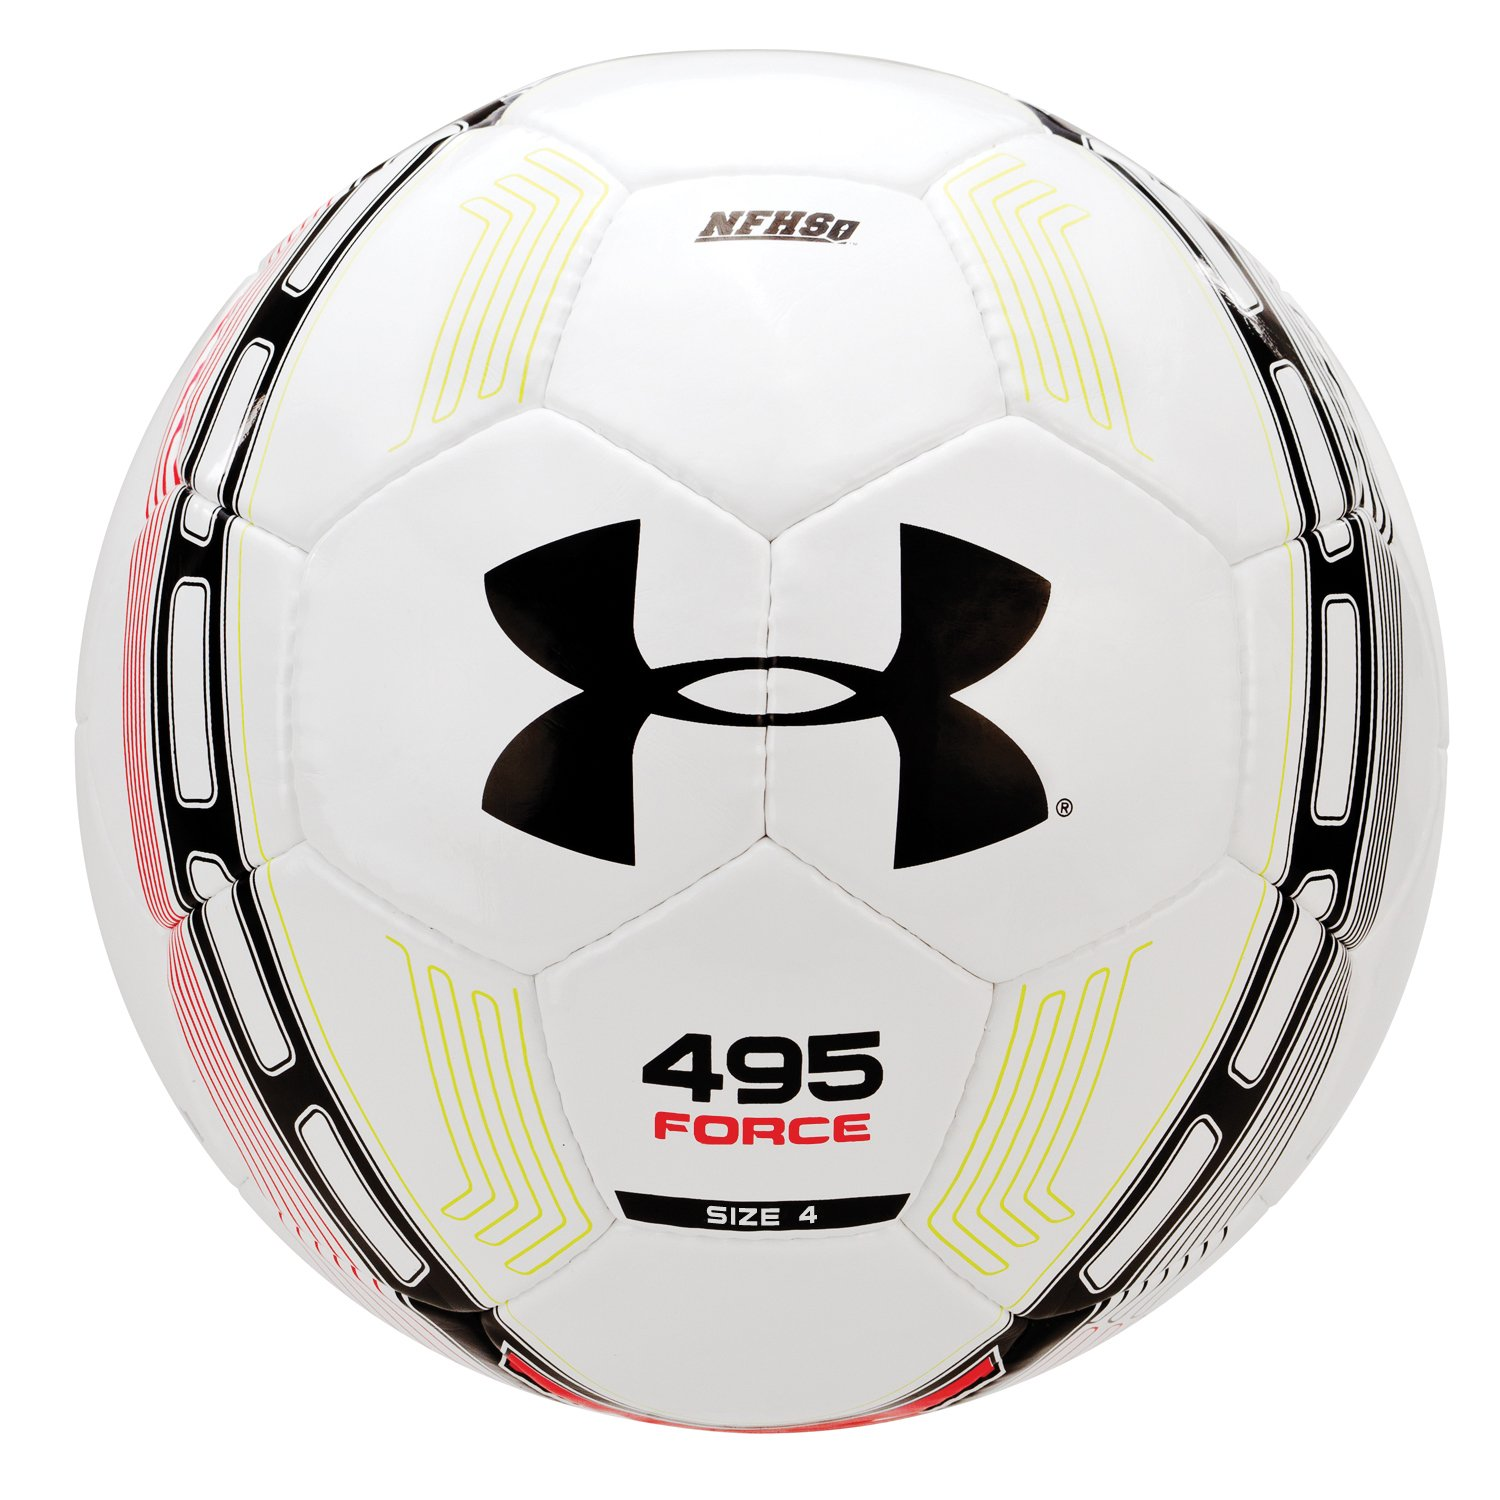 Under Armour 495 Force Soccer Ball: Amazon.es: Deportes y aire libre